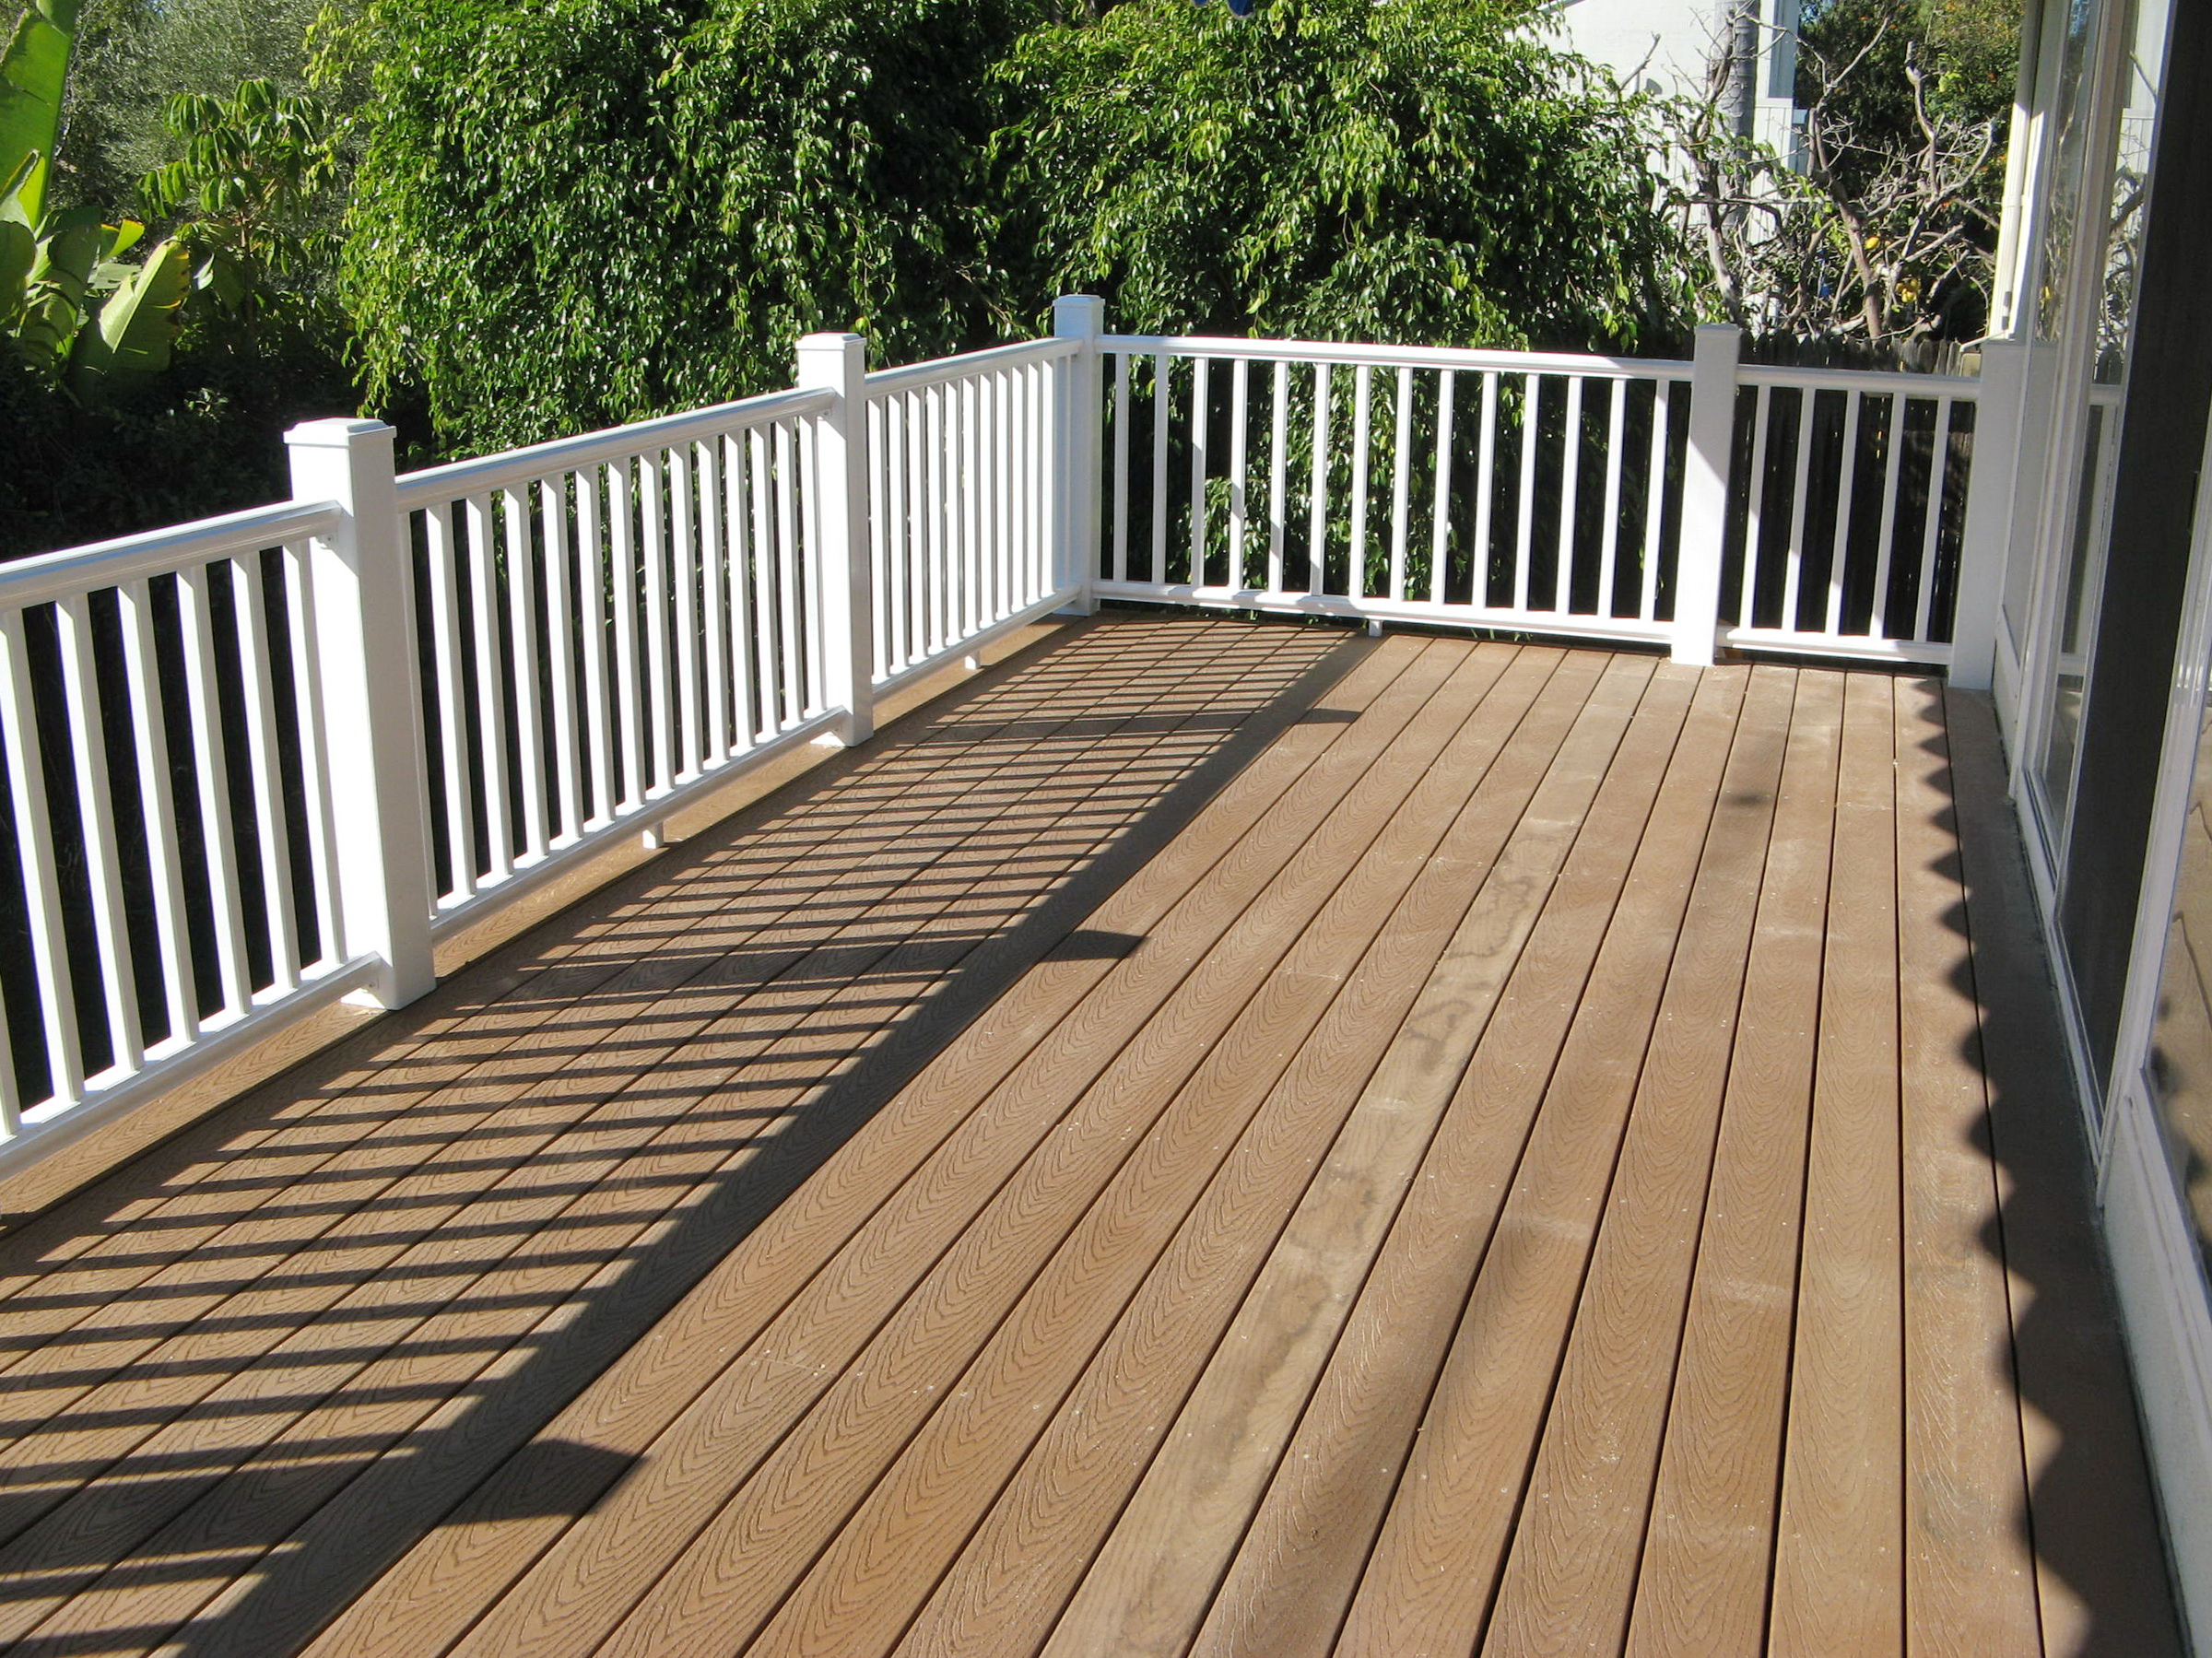 Vinyl deck railing with TimberTech planking